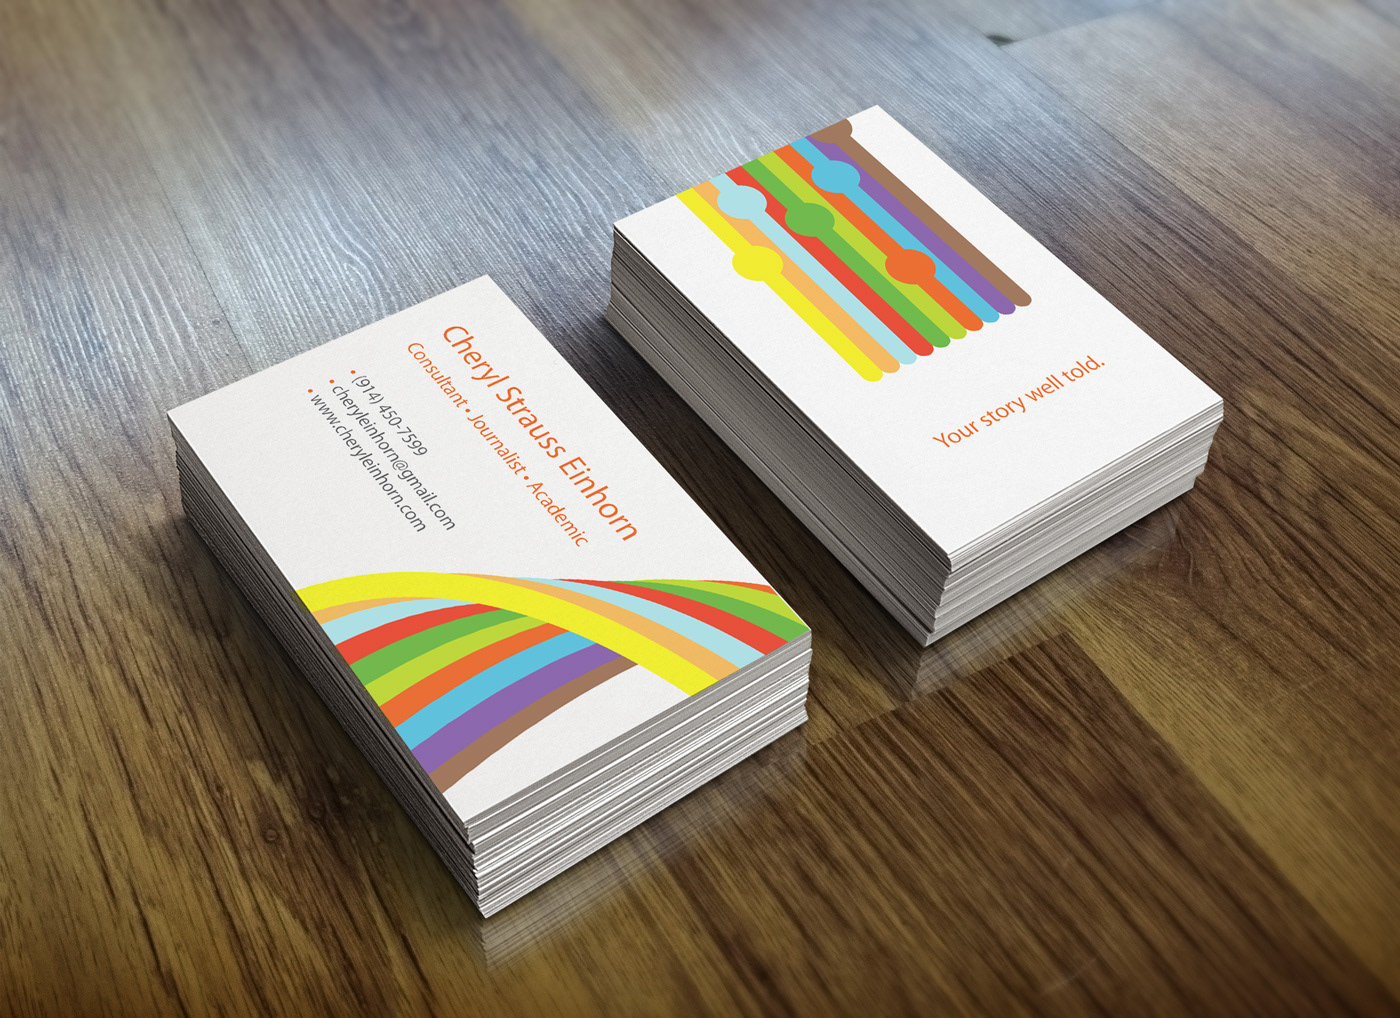 Cheryl einhorn branding business cards on behance cheryl teaches as an adjunct professor at columbia business school and has won several journalism awards for her investigative stories about international reheart Choice Image